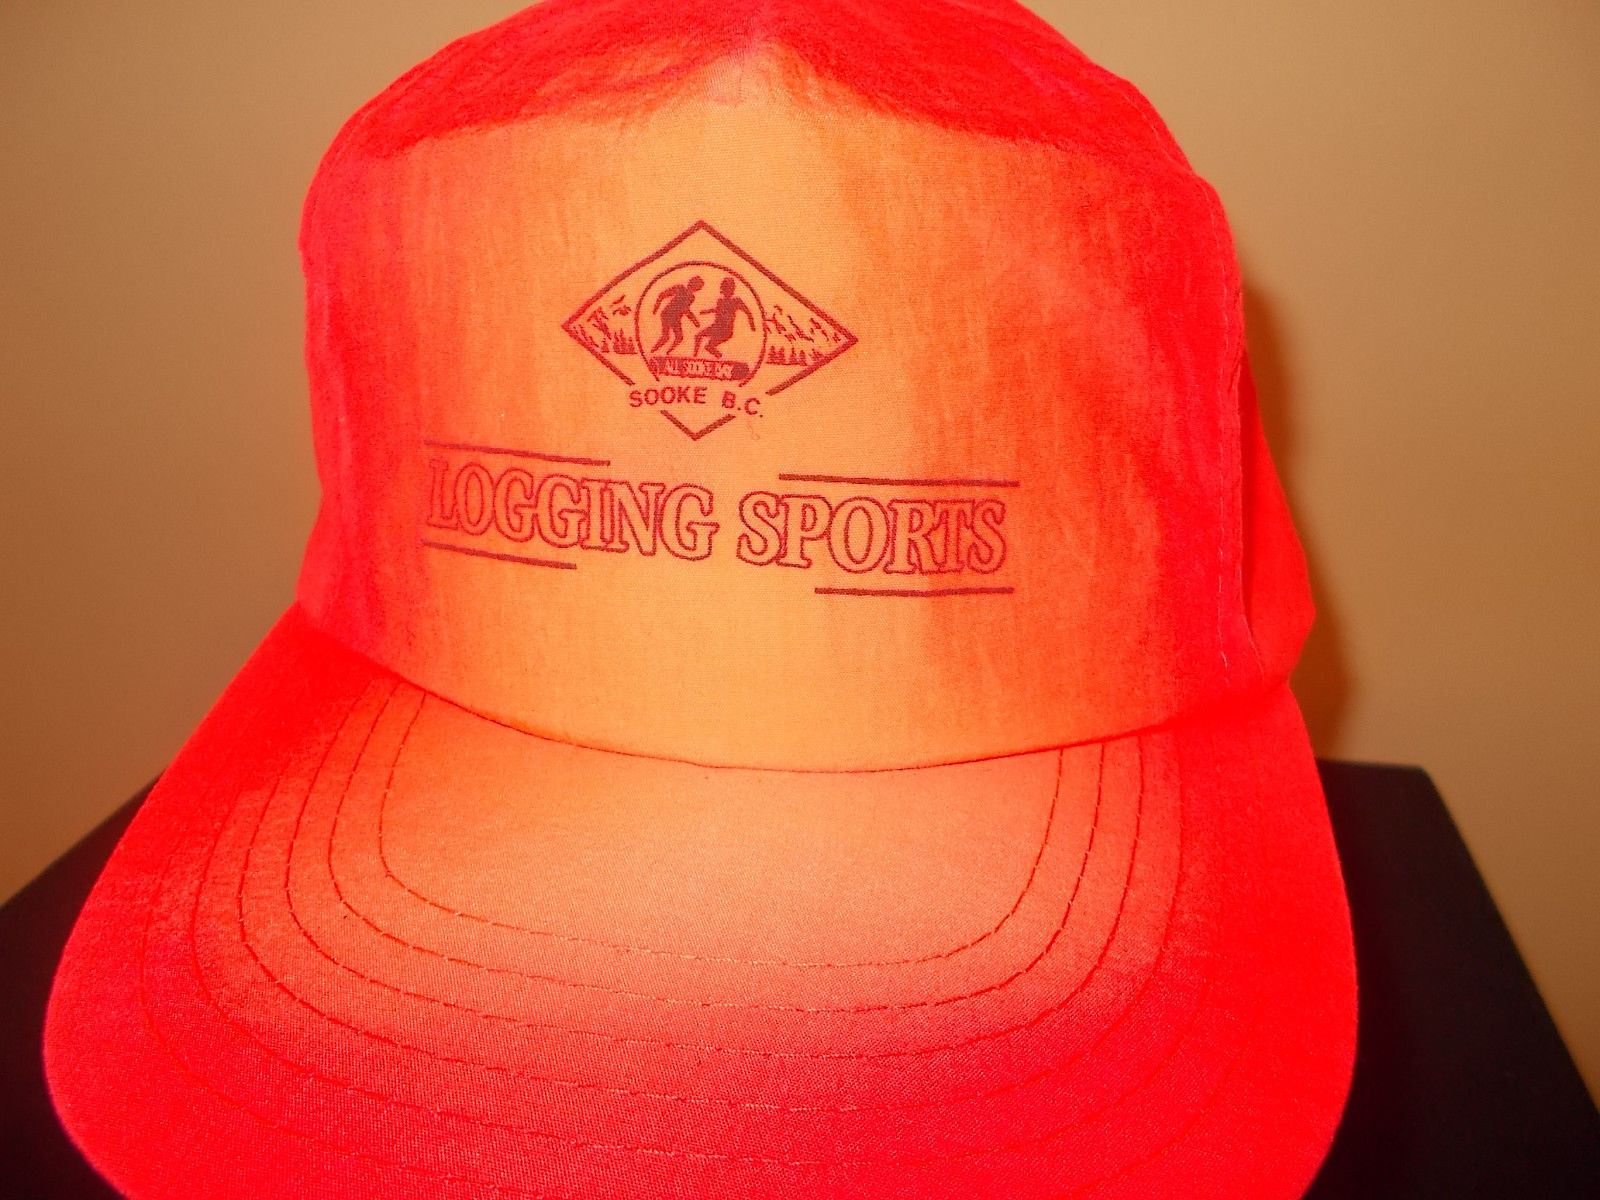 VTG-1990s All Sooke Day British Columbia Canada Logging Sports Logger Compet hat